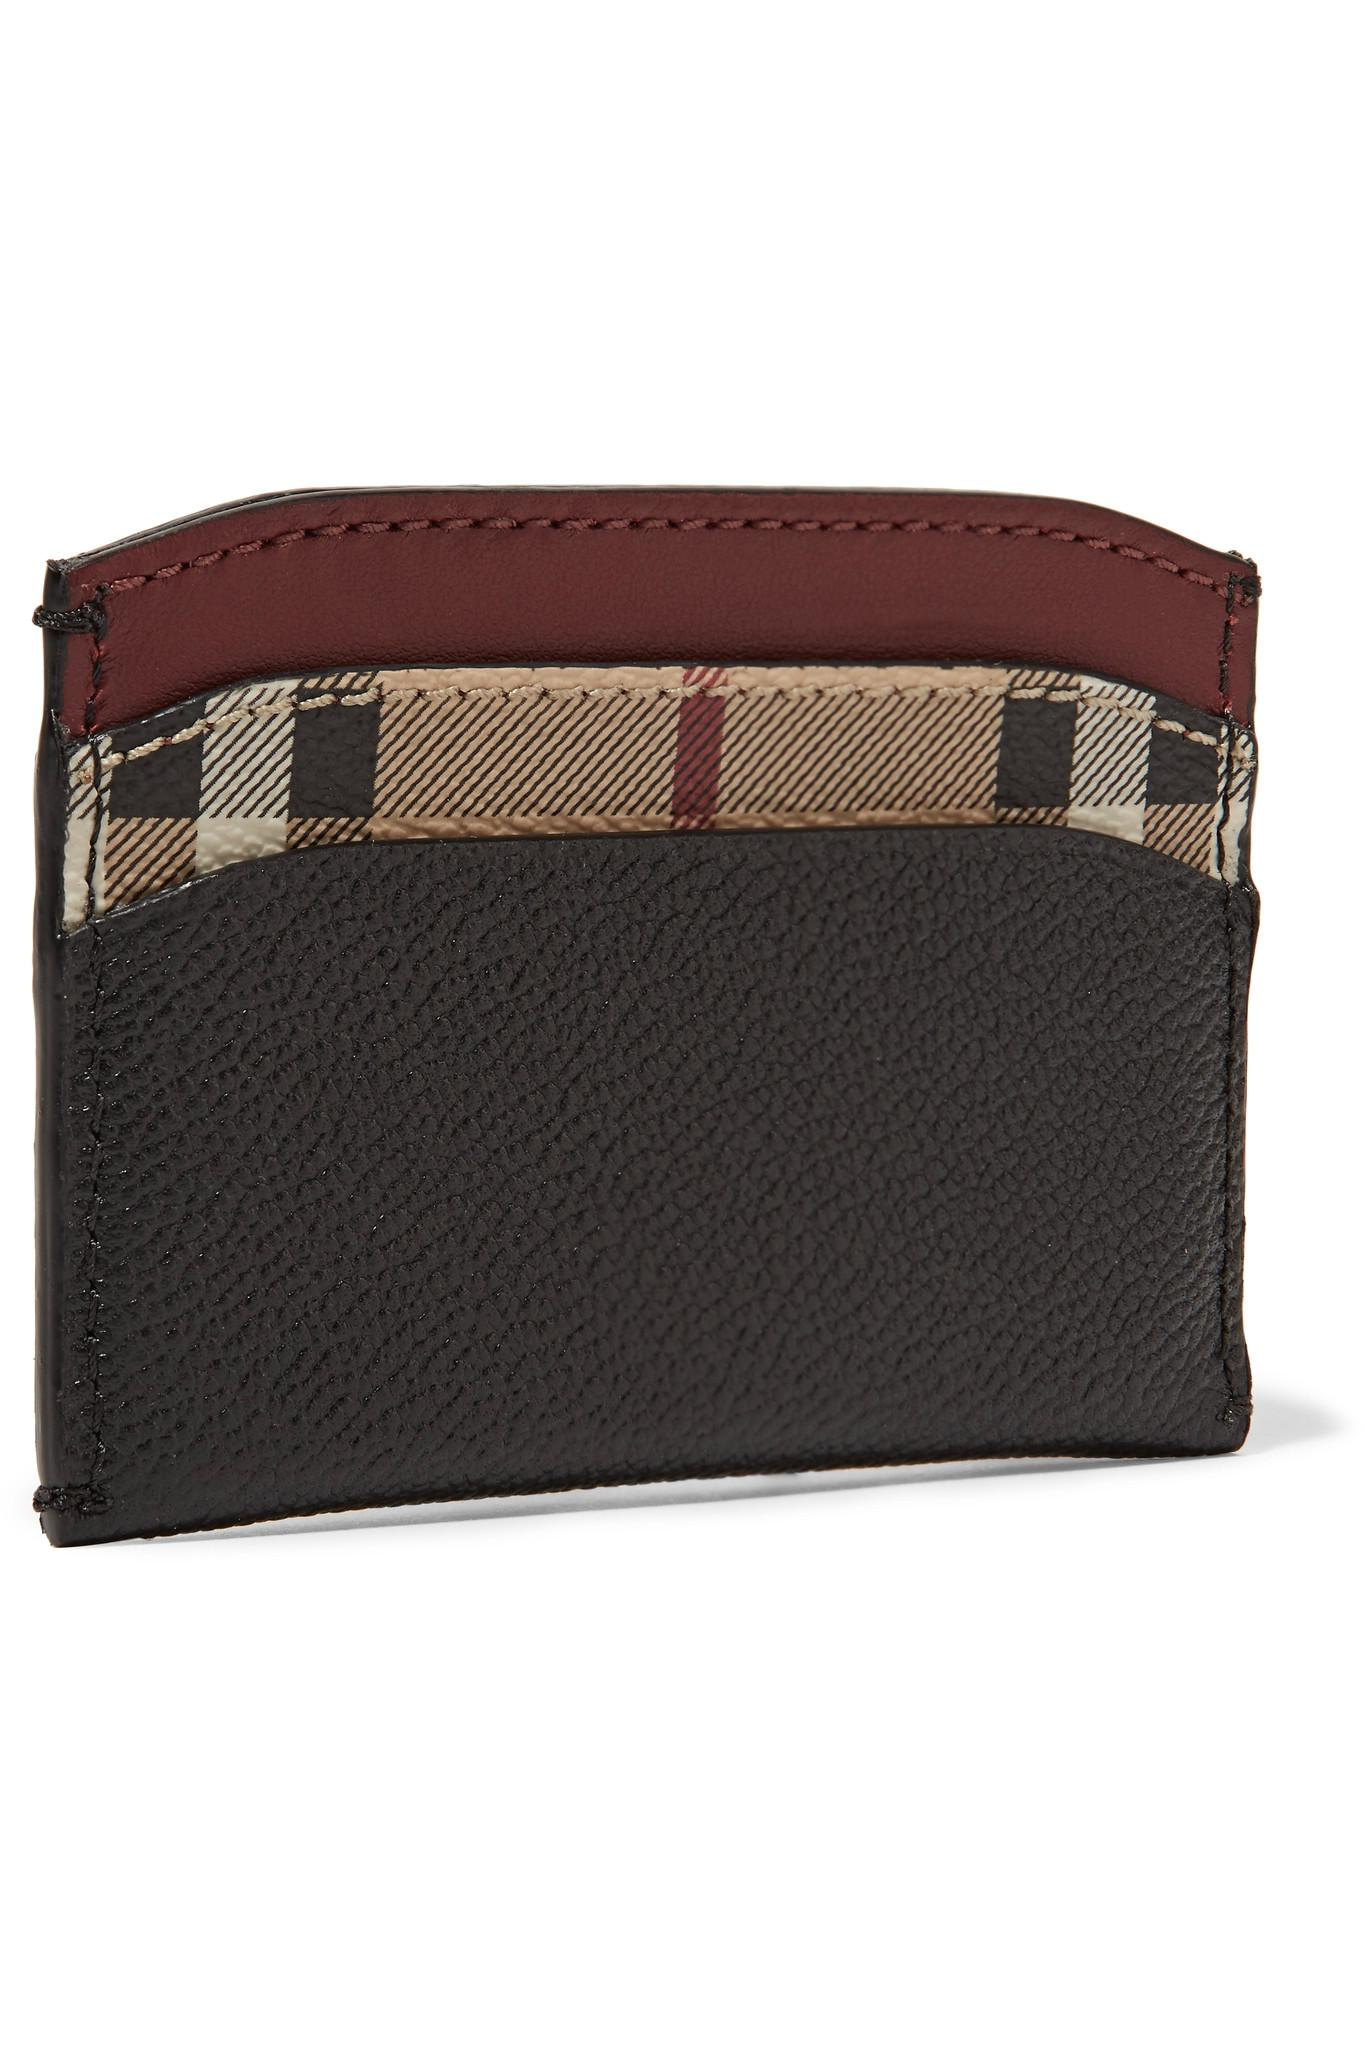 Burberry Leather And Checked Coated Canvas Cardholder Free Shipping Limited Edition 3zOuO